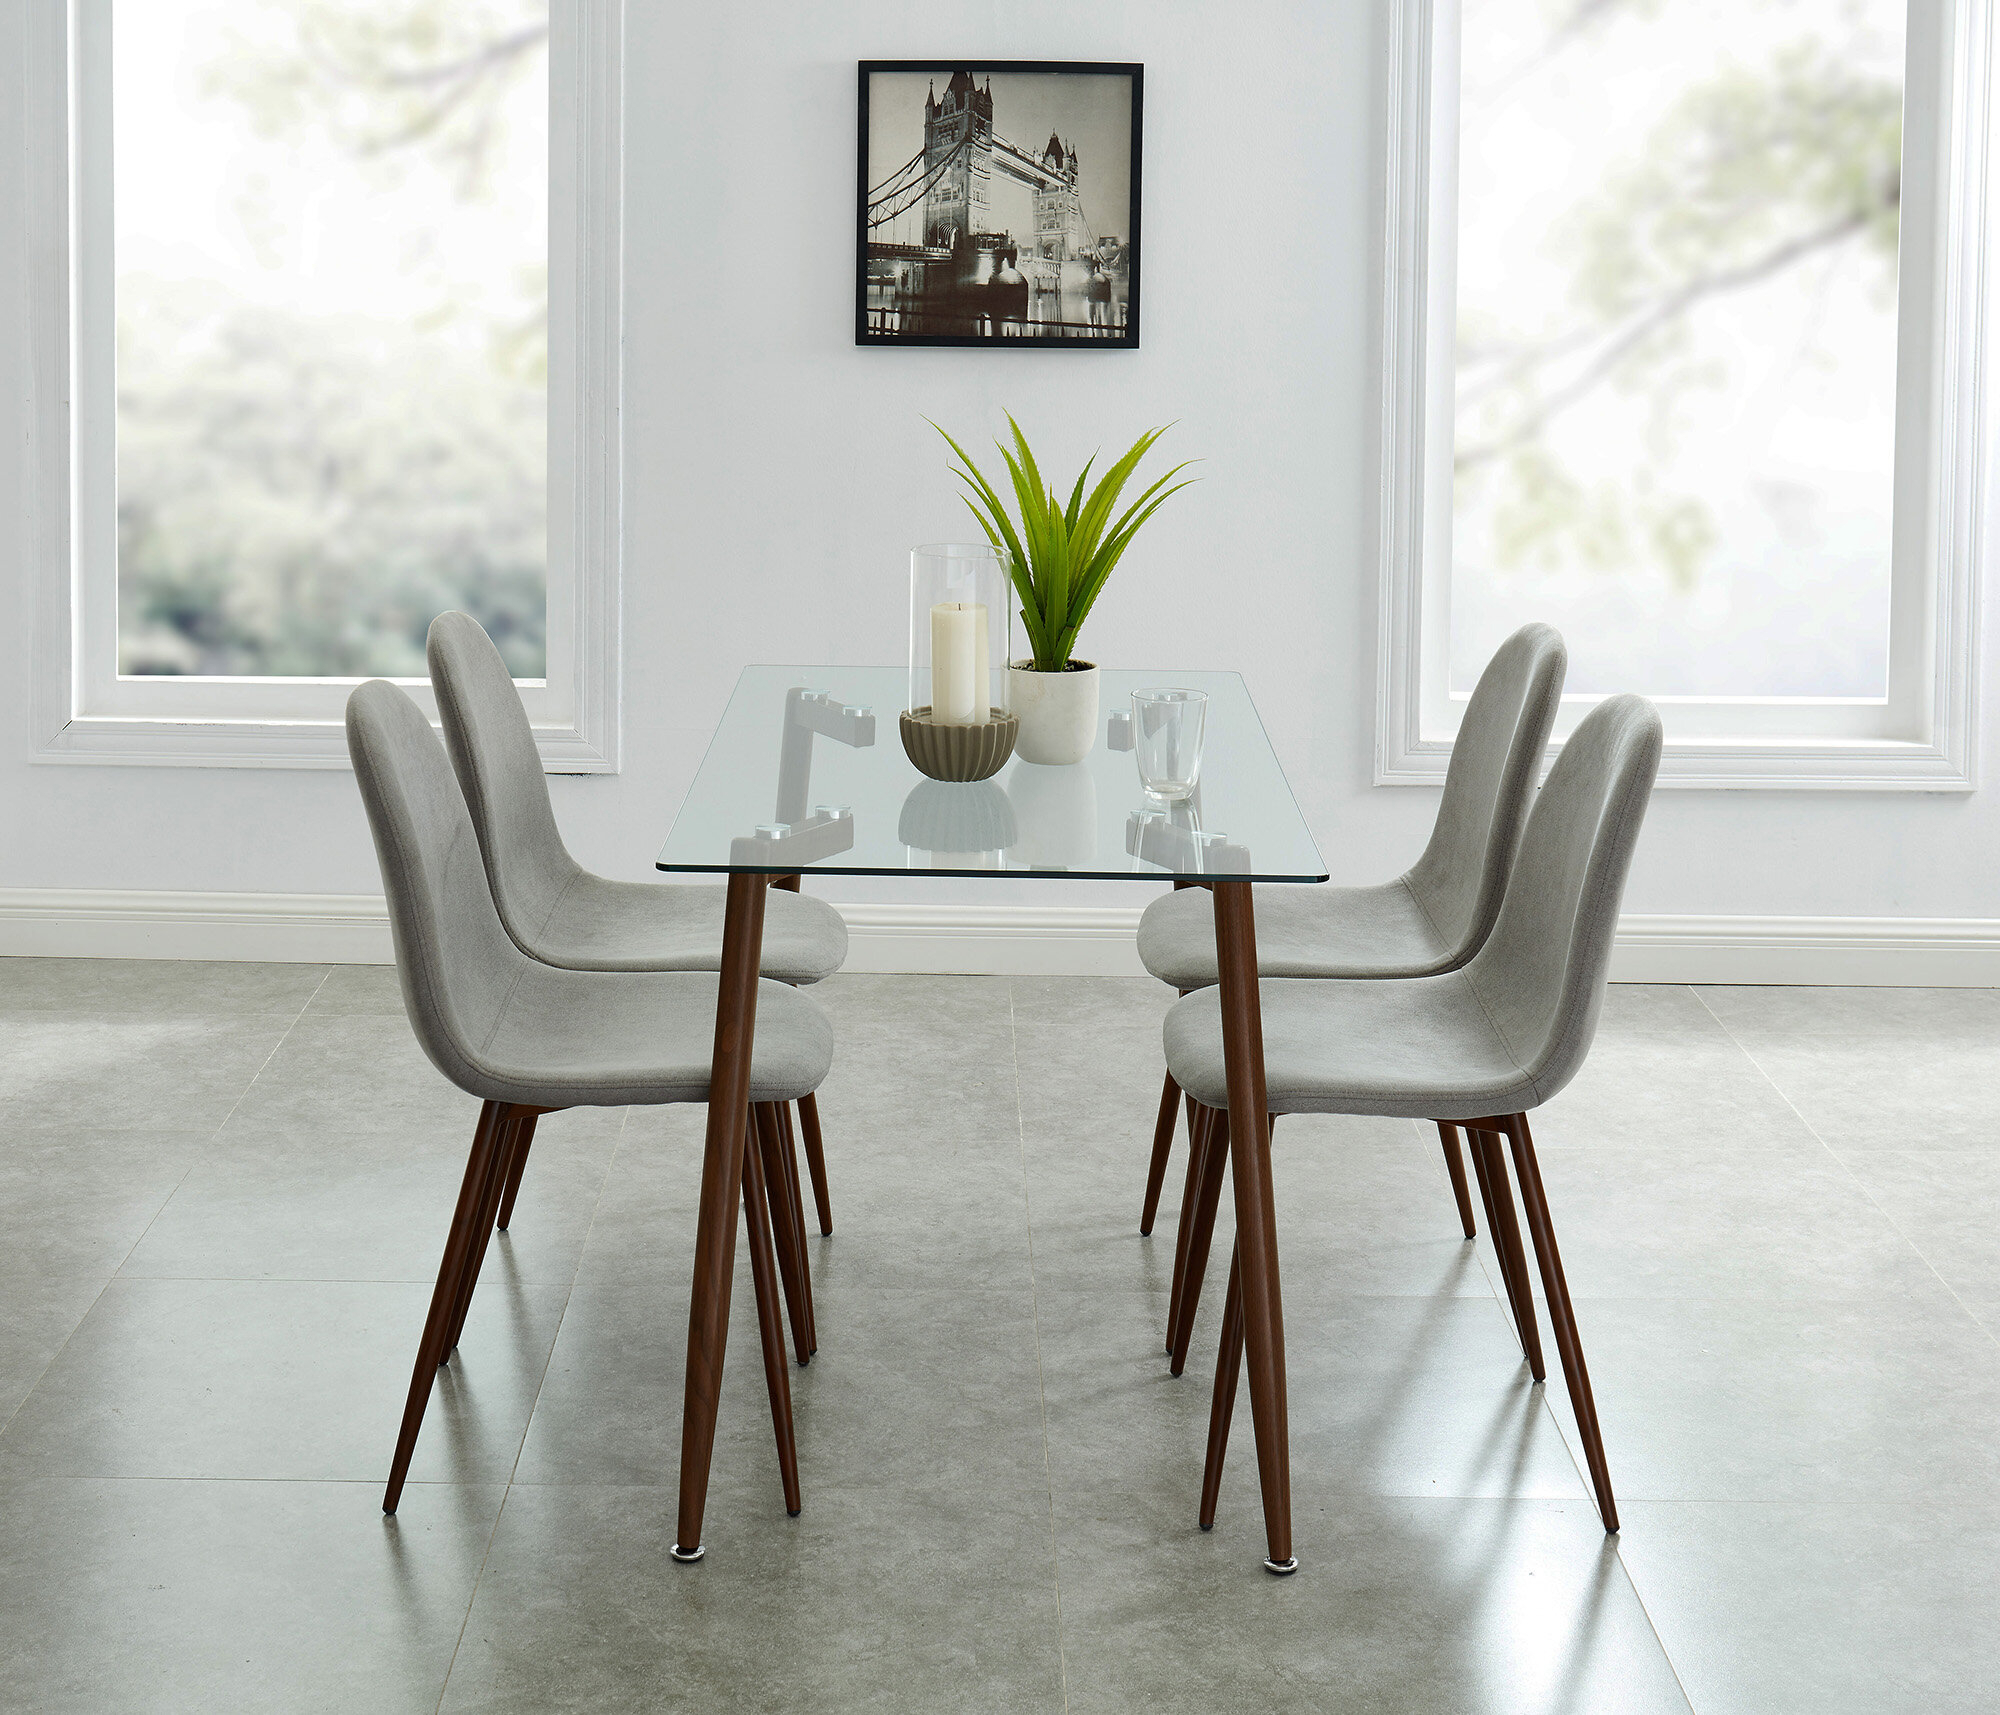 Madonna Contemporary 5 Piece Dining Set Pertaining To 2017 Travon 5 Piece Dining Sets (Photo 19 of 20)